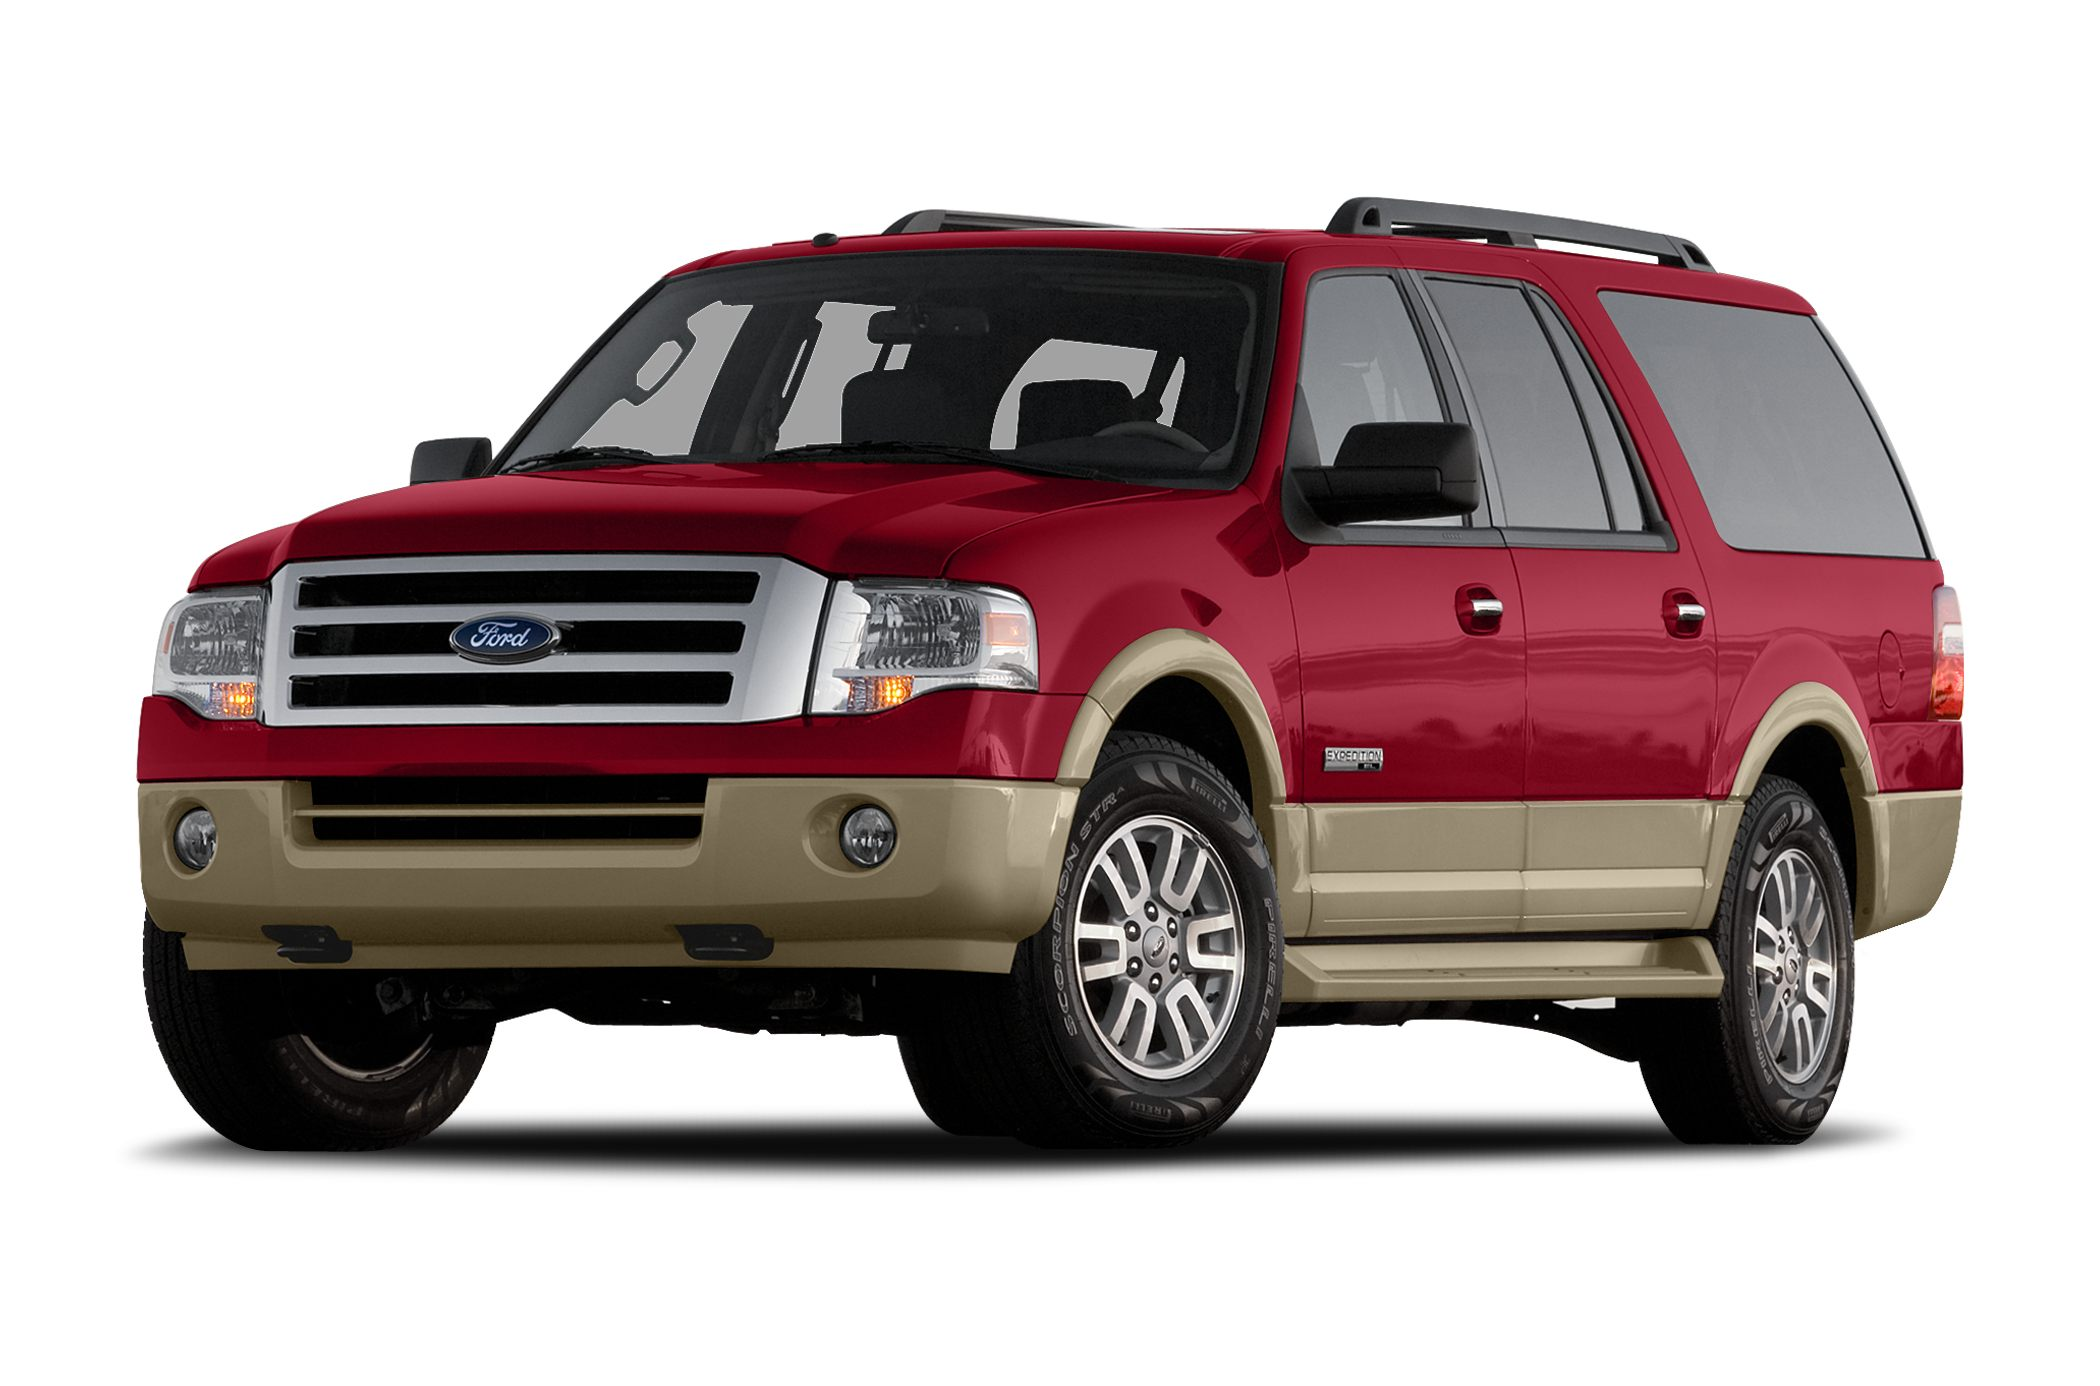 2008 Ford Expedition EL  Miles 104340Color Tan Stock 1825 VIN 1FMFK15538LA37869